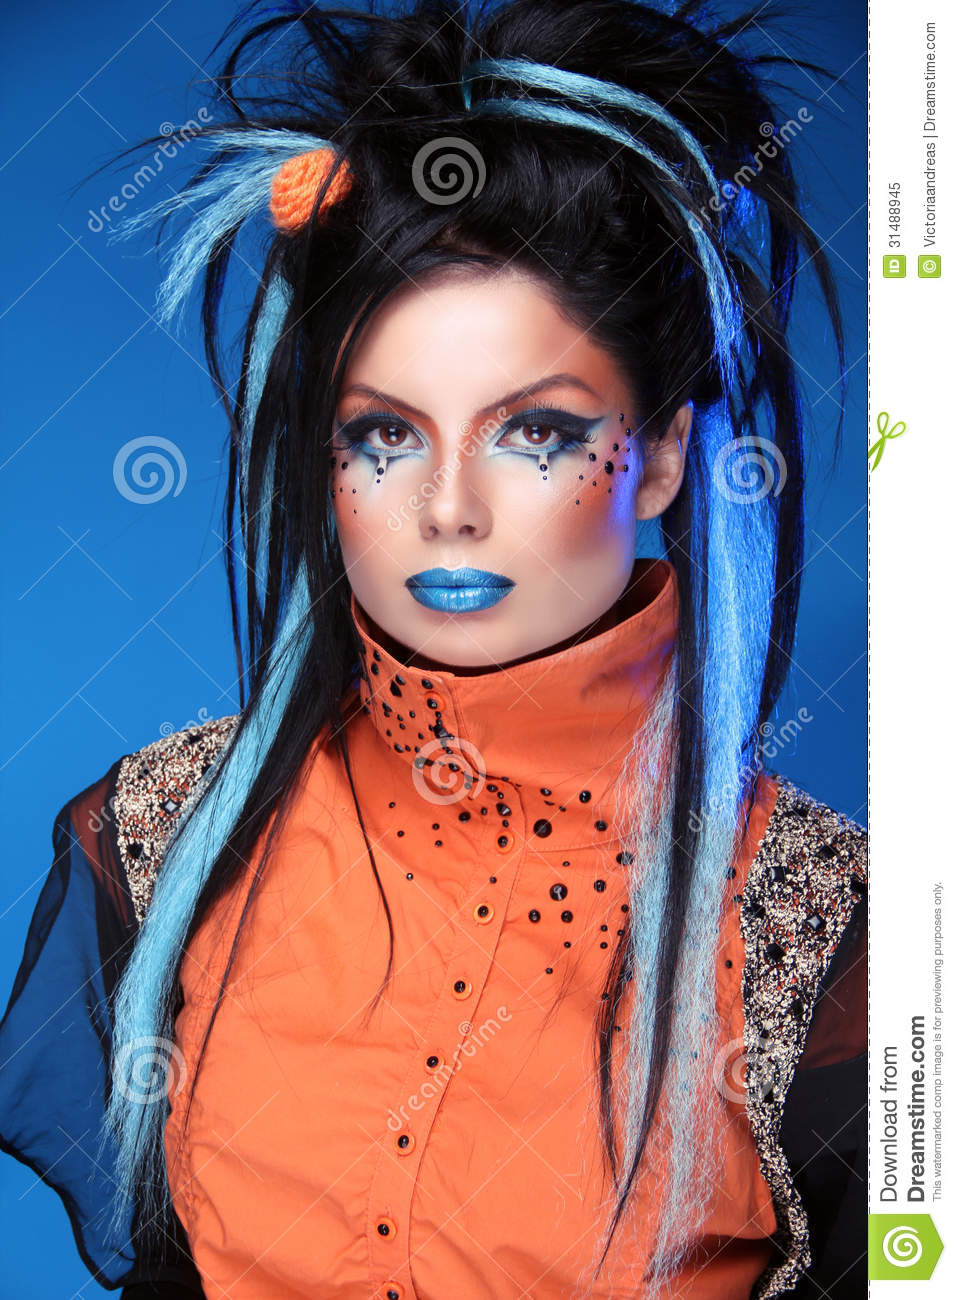 Makeup. Punk Hairstyle. Close Up Portrait Of Rock Girl With Blue Royalty Free Stock Photo ...